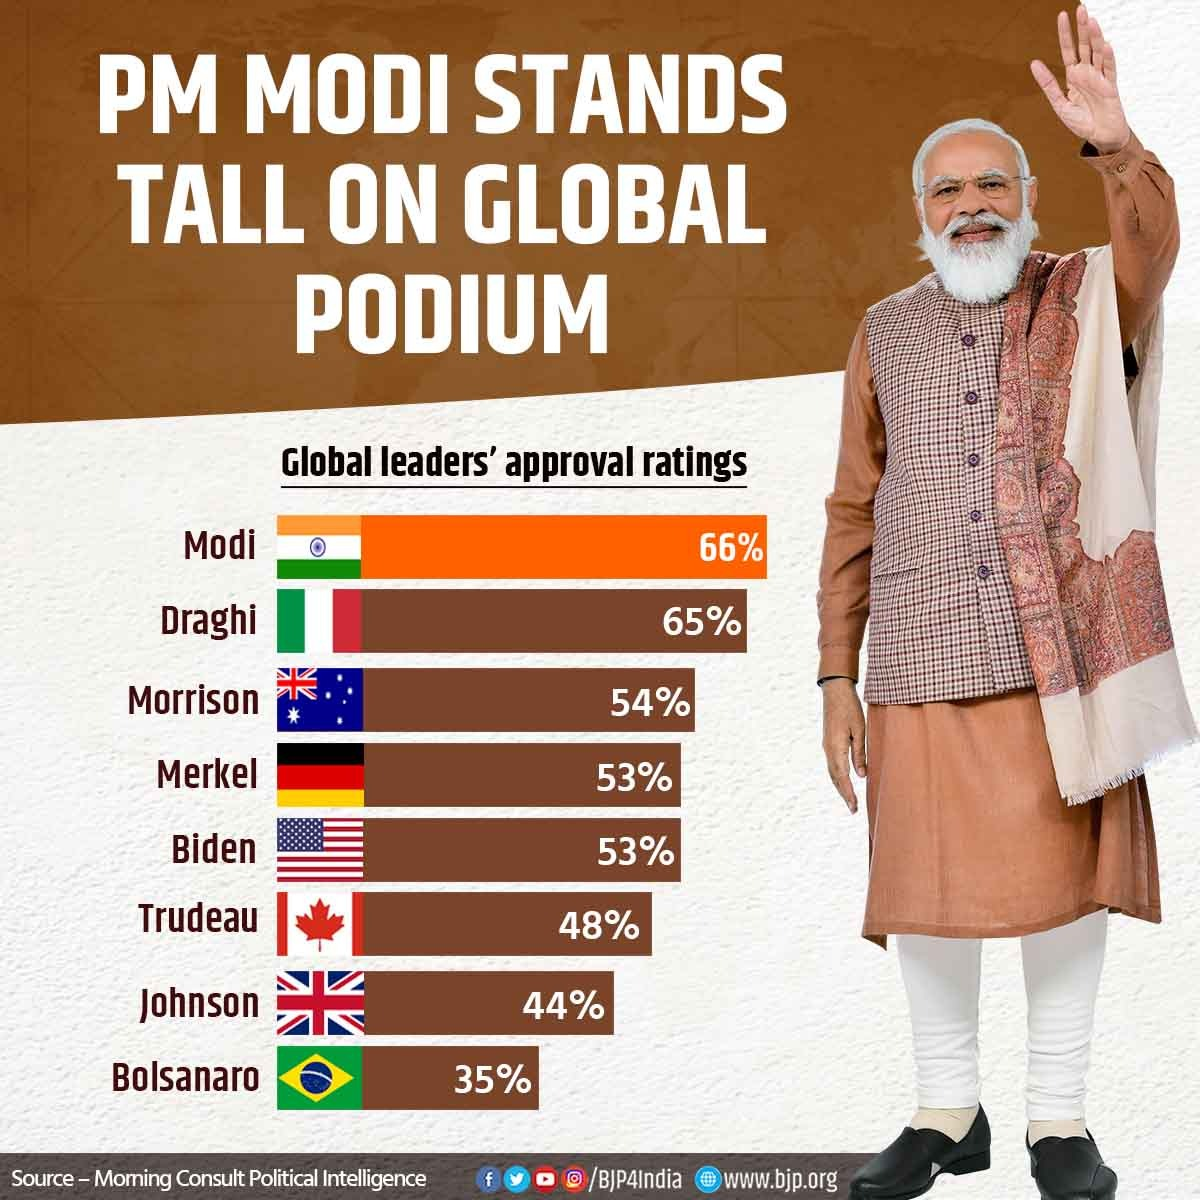 PM Modi stands tall on global podium.  Approval ratings of PM Shri @narendramodi are highest among all world leaders. https://t.co/Y0XviYOksu